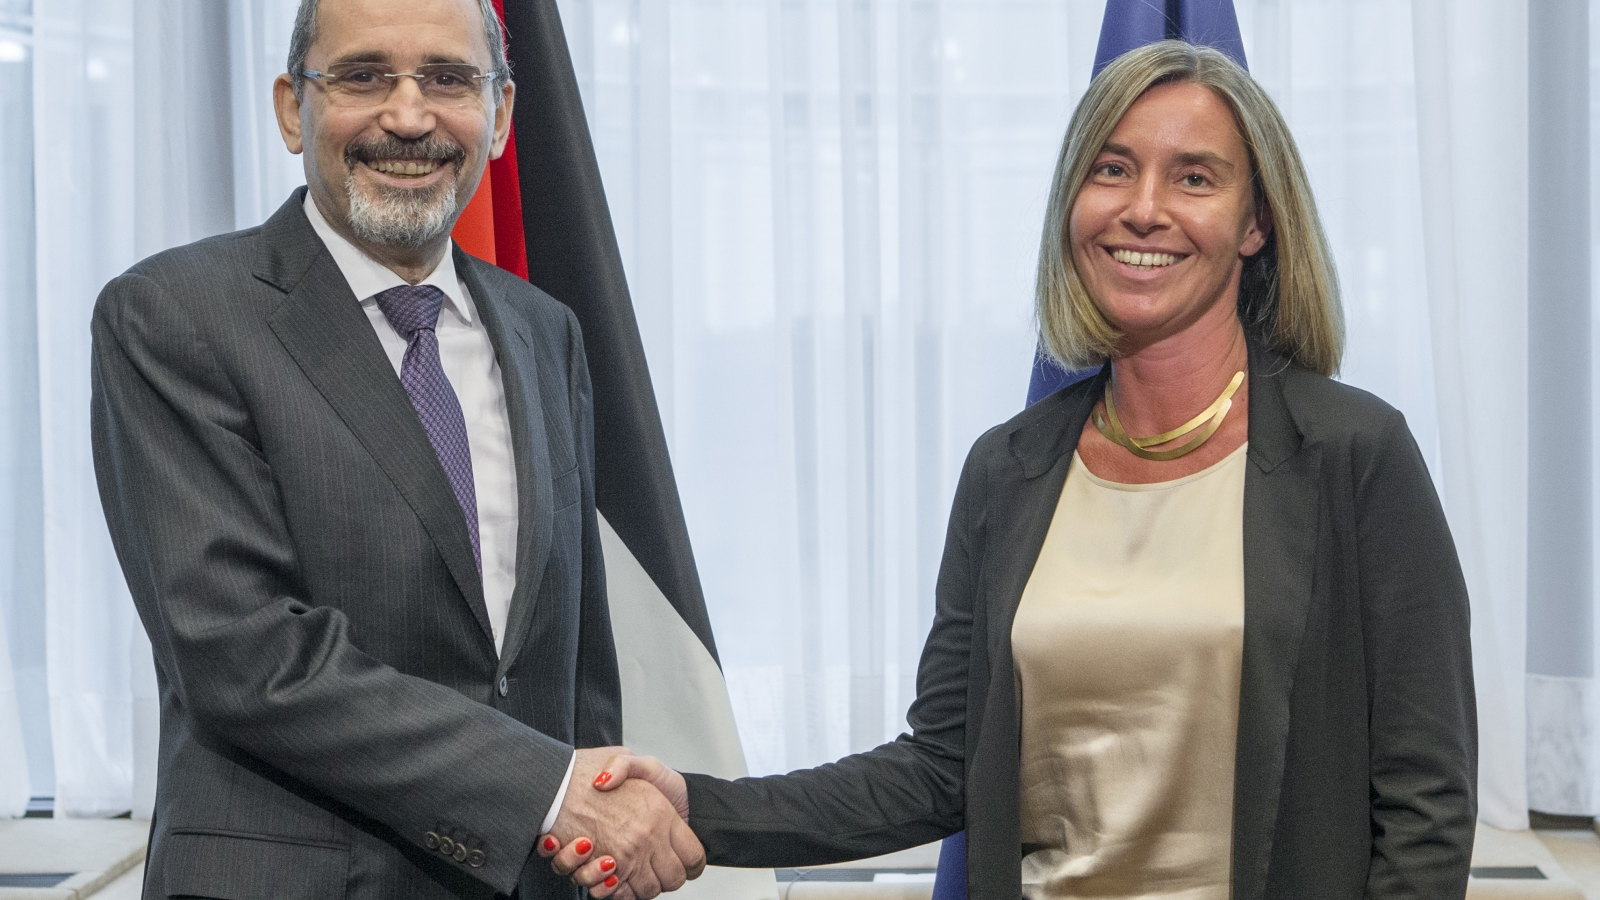 Ayman Safadi and Federica Mogherini